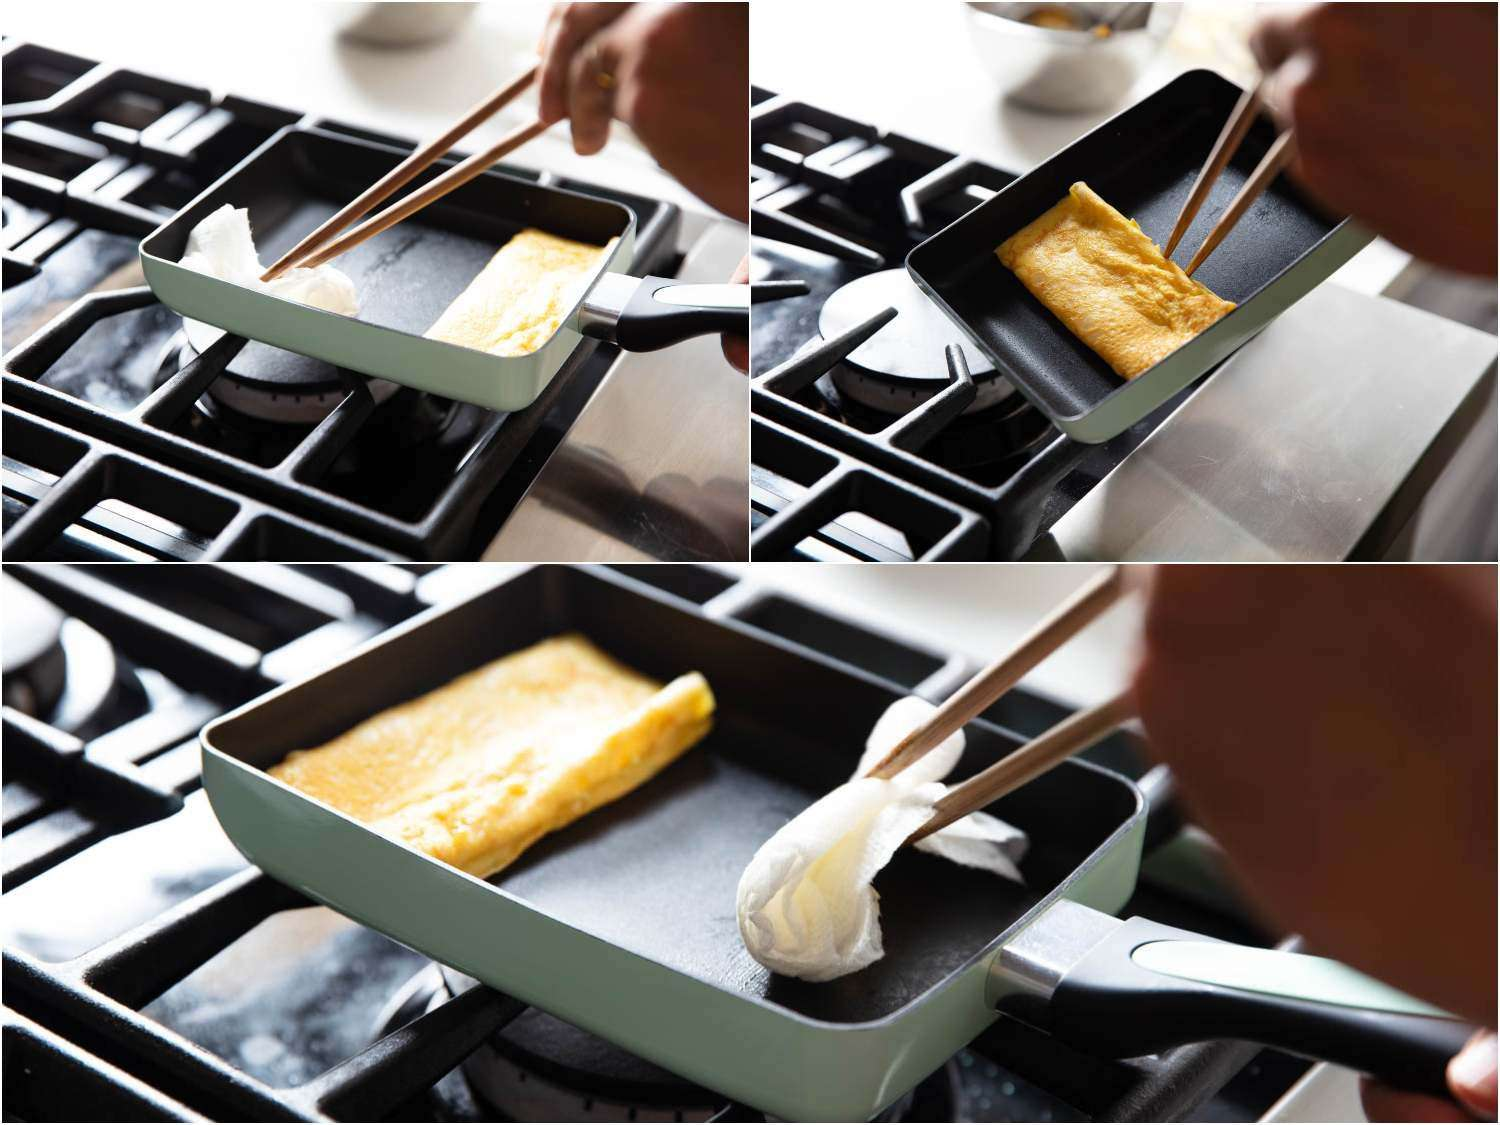 A series of 3 photographs showing how, after rolling the omelette each time toward the handle, the empty area of the pan is lightly greased again, then the omelette roll is slid back to the far side of the pan, and the area near the handle is then greased as well.